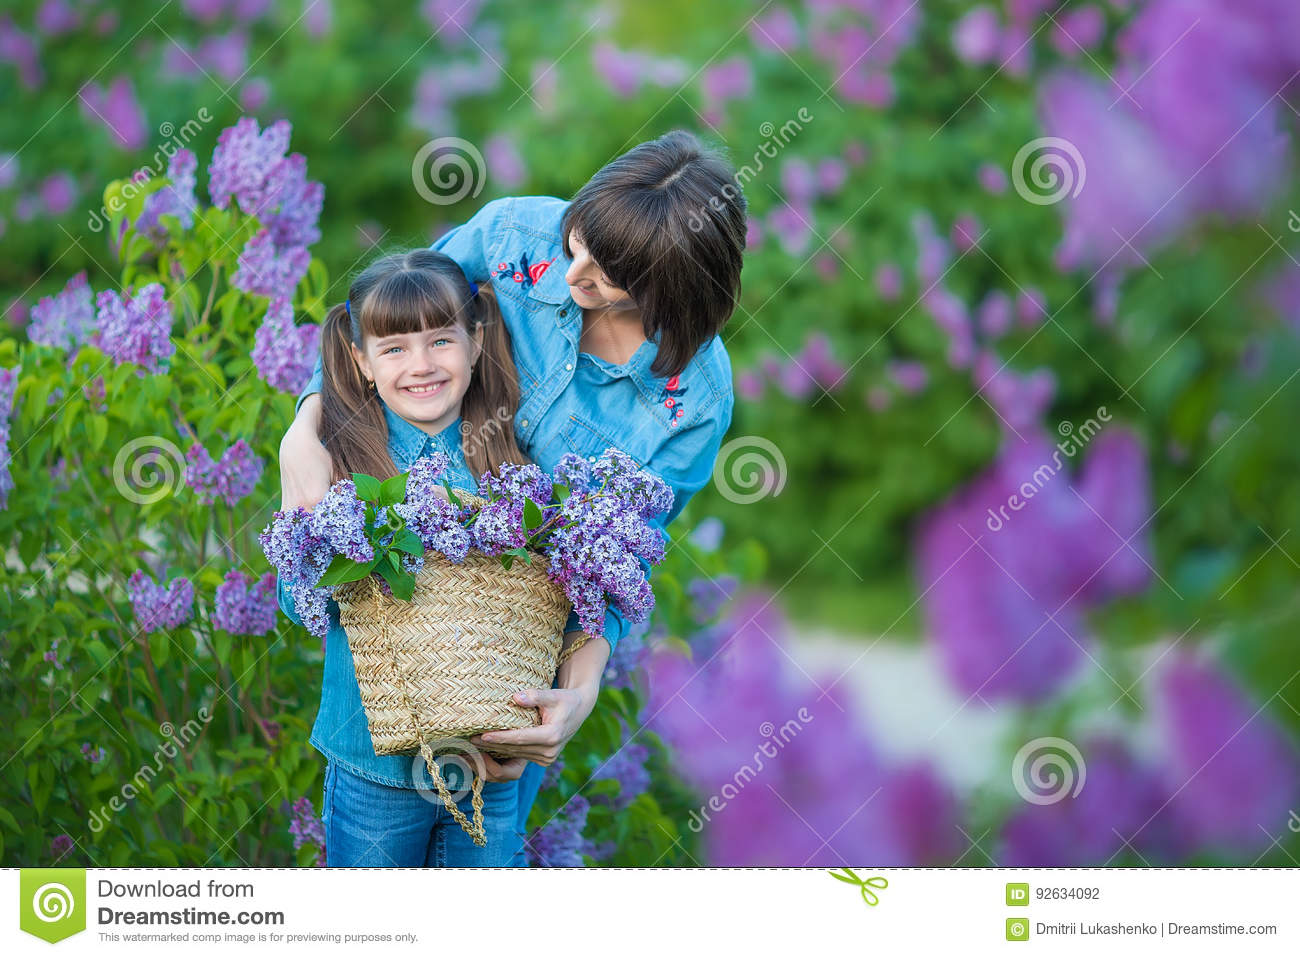 Download Cute Adorable Beautifull Mother Lady Mom Woman With Brunette Girl Daughter In Meadow Of Lilac